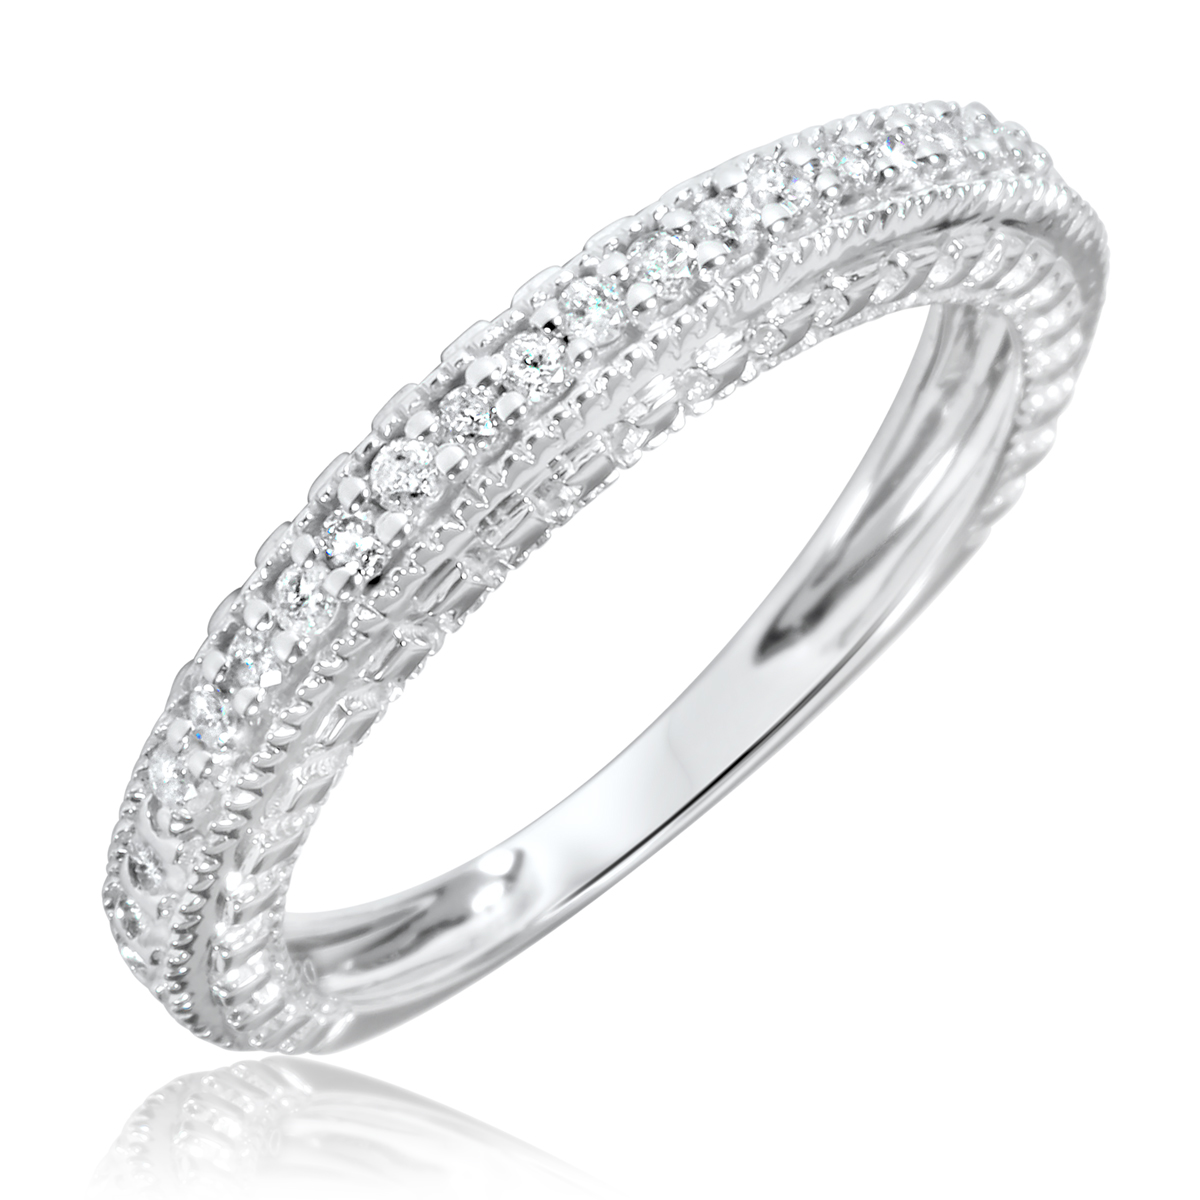 1/5 Carat T.W. Round Cut Diamond Women's Wedding Ring 14K White Gold- Size 8